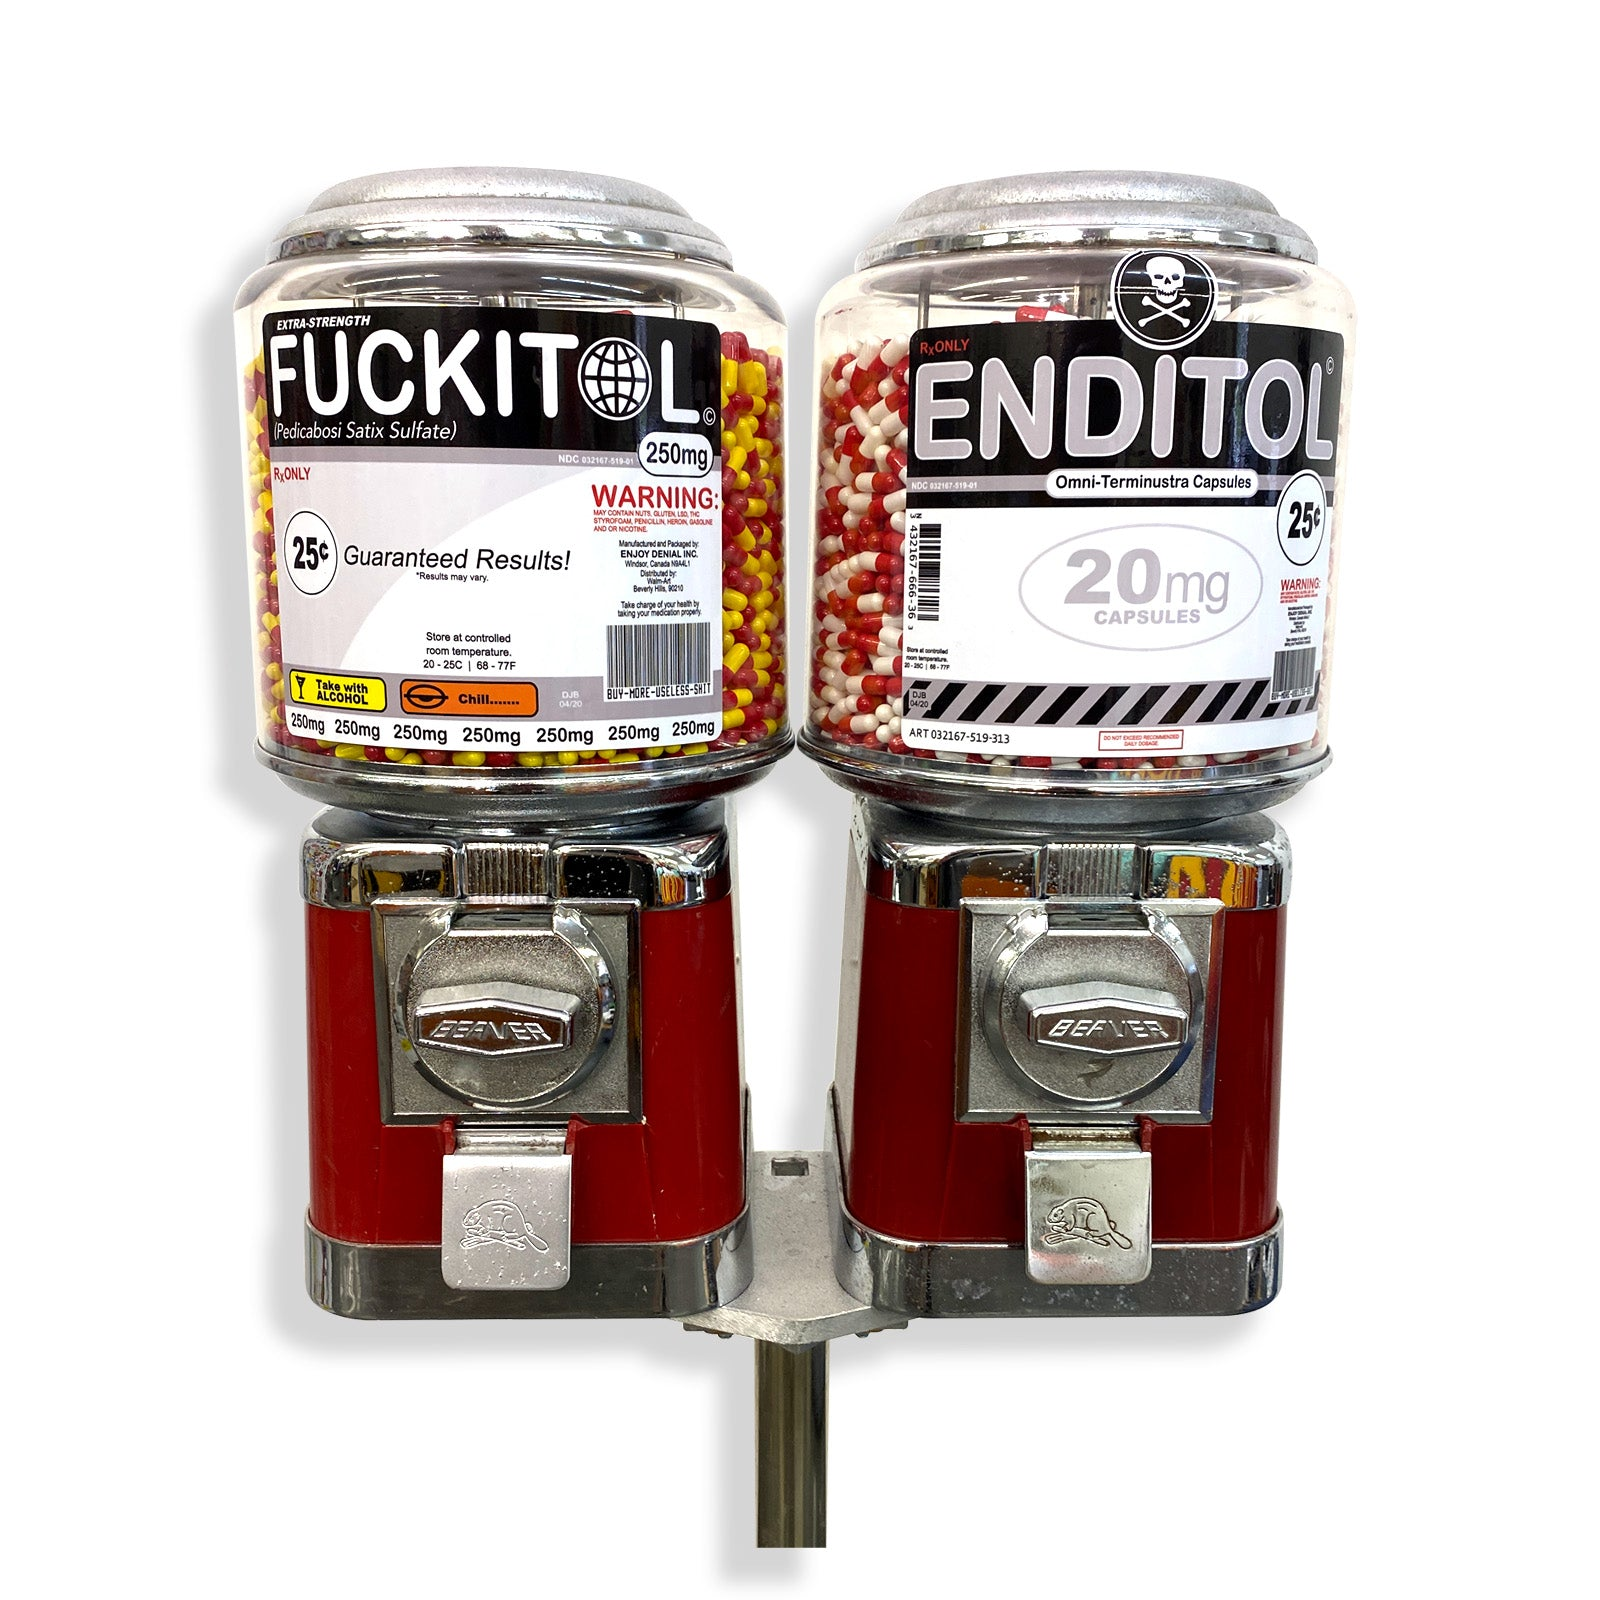 FUCKITOL, ENDITOL - Galerie Station 16